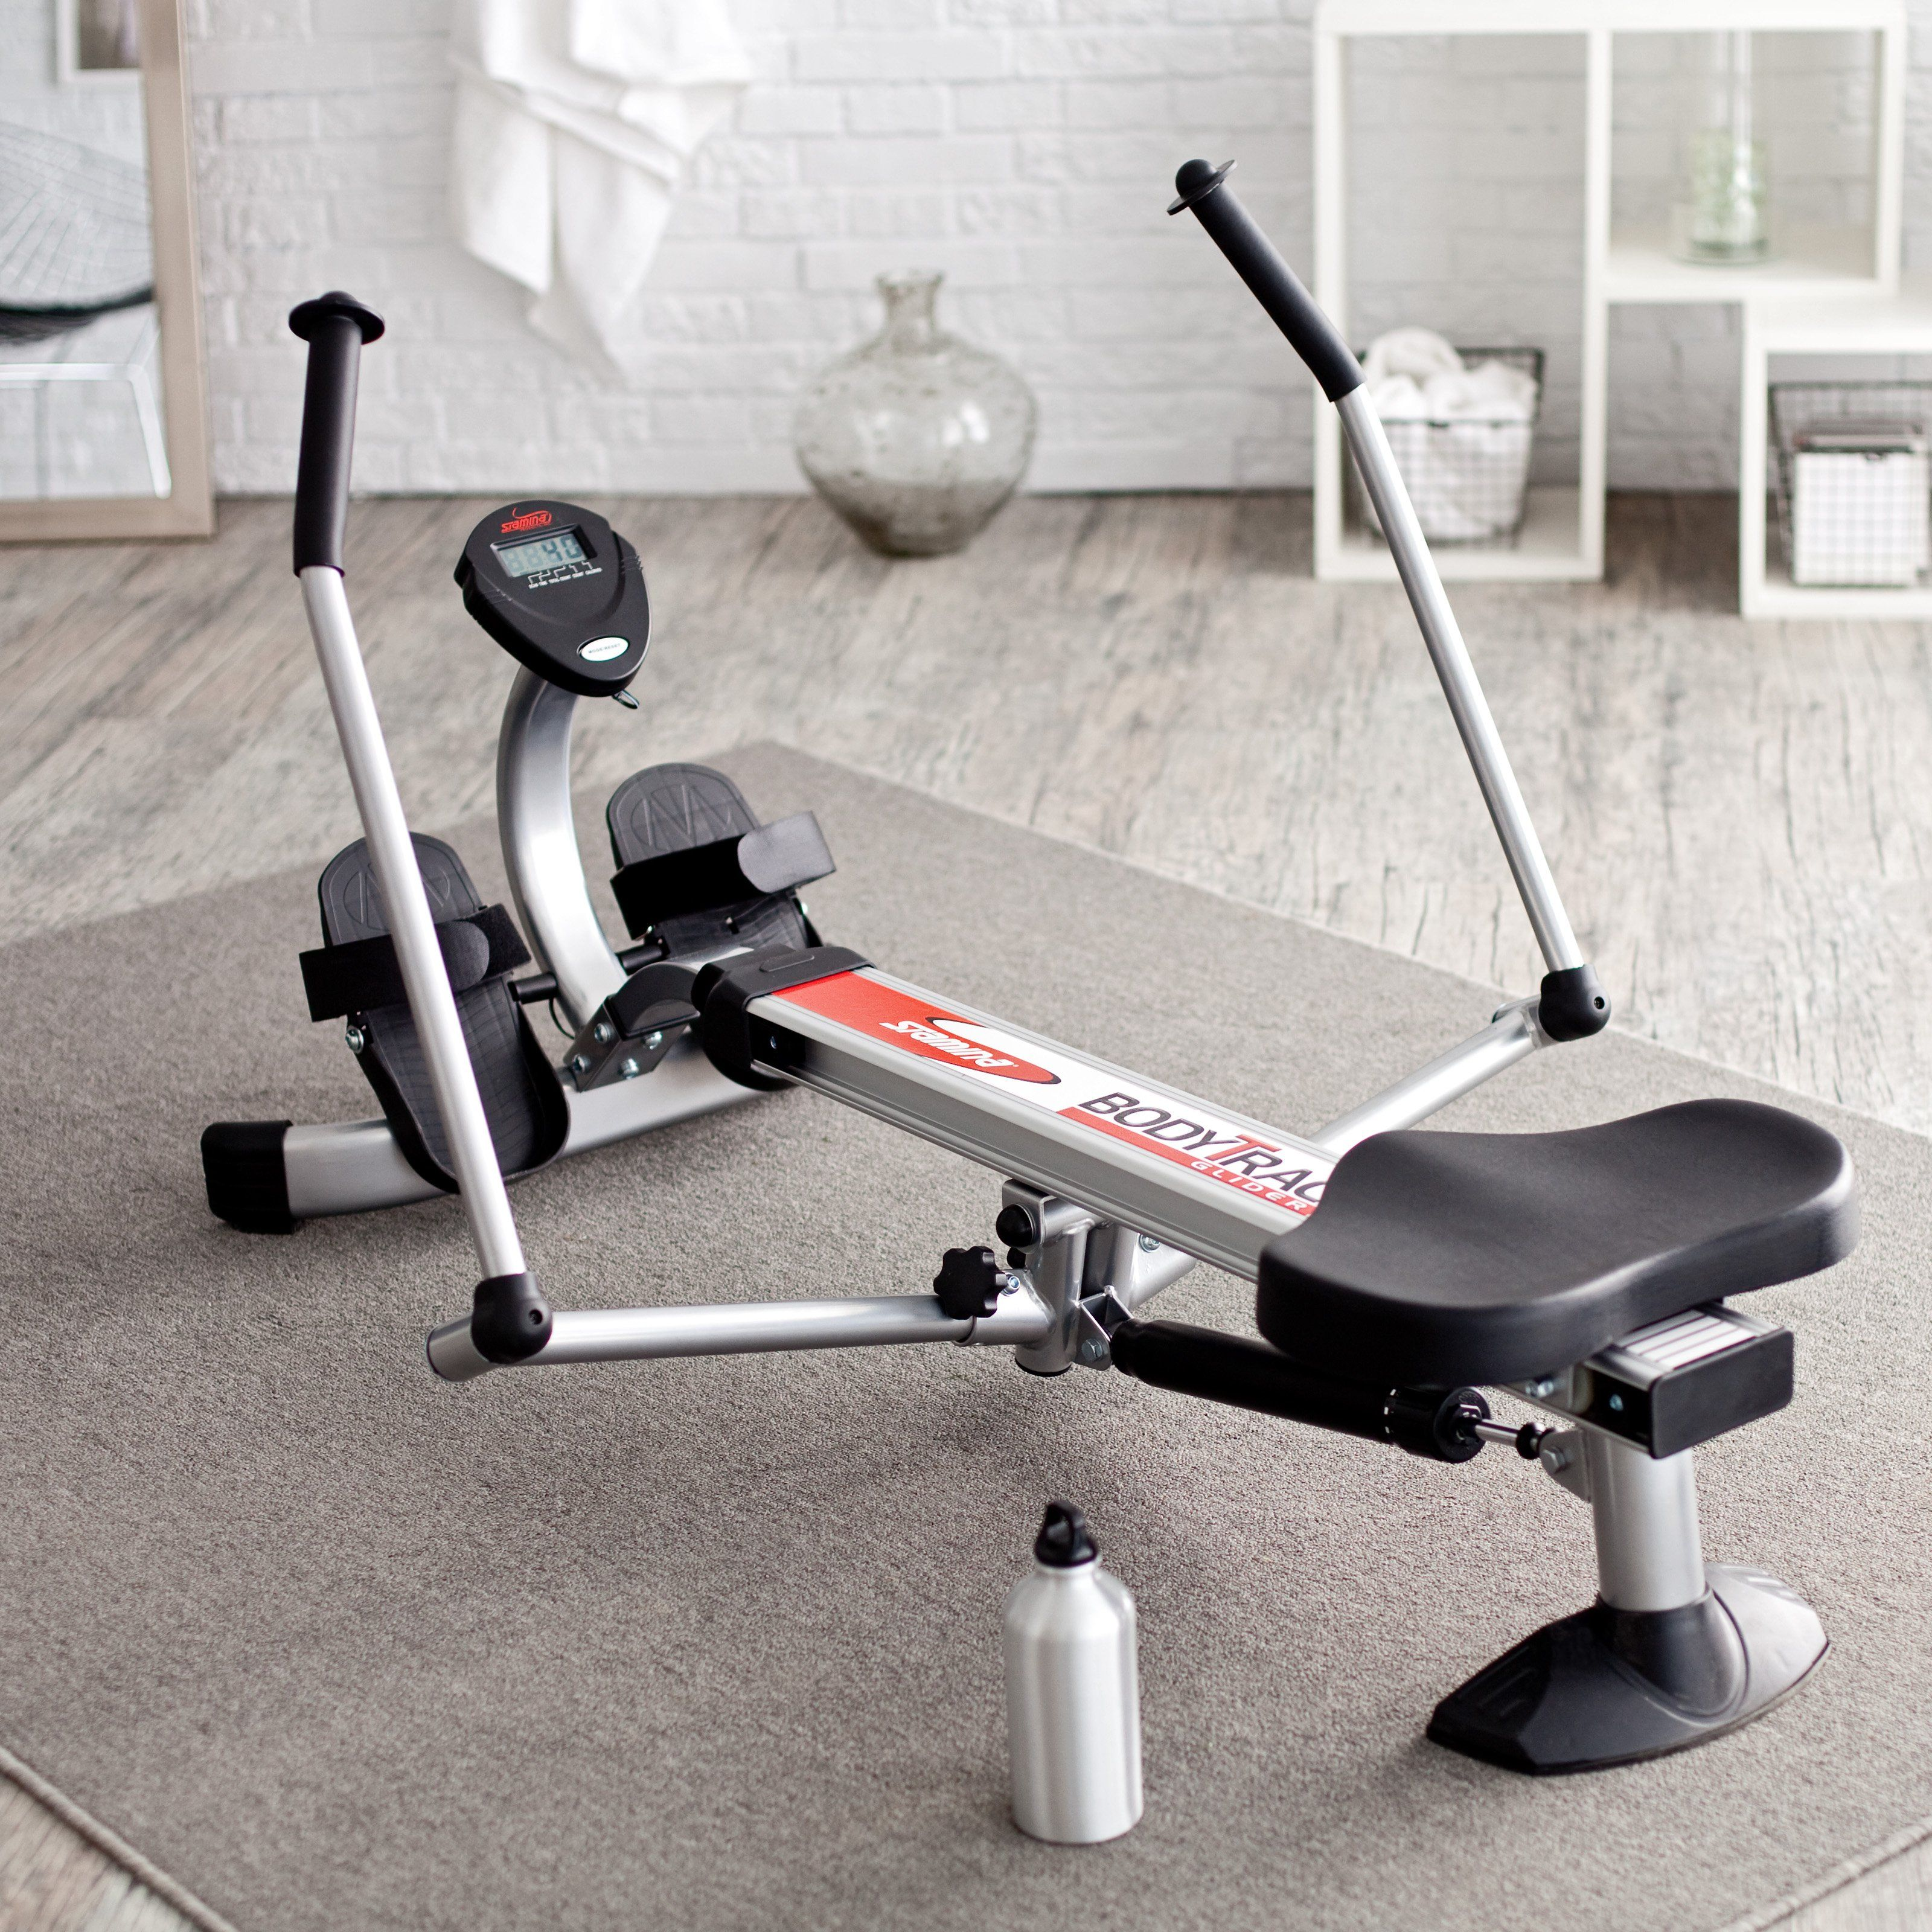 Have To Have It Stamina 1050 Body Trac Glider Rowing Machine 144 98 No Equipment Workout Rowing Machines Rowing